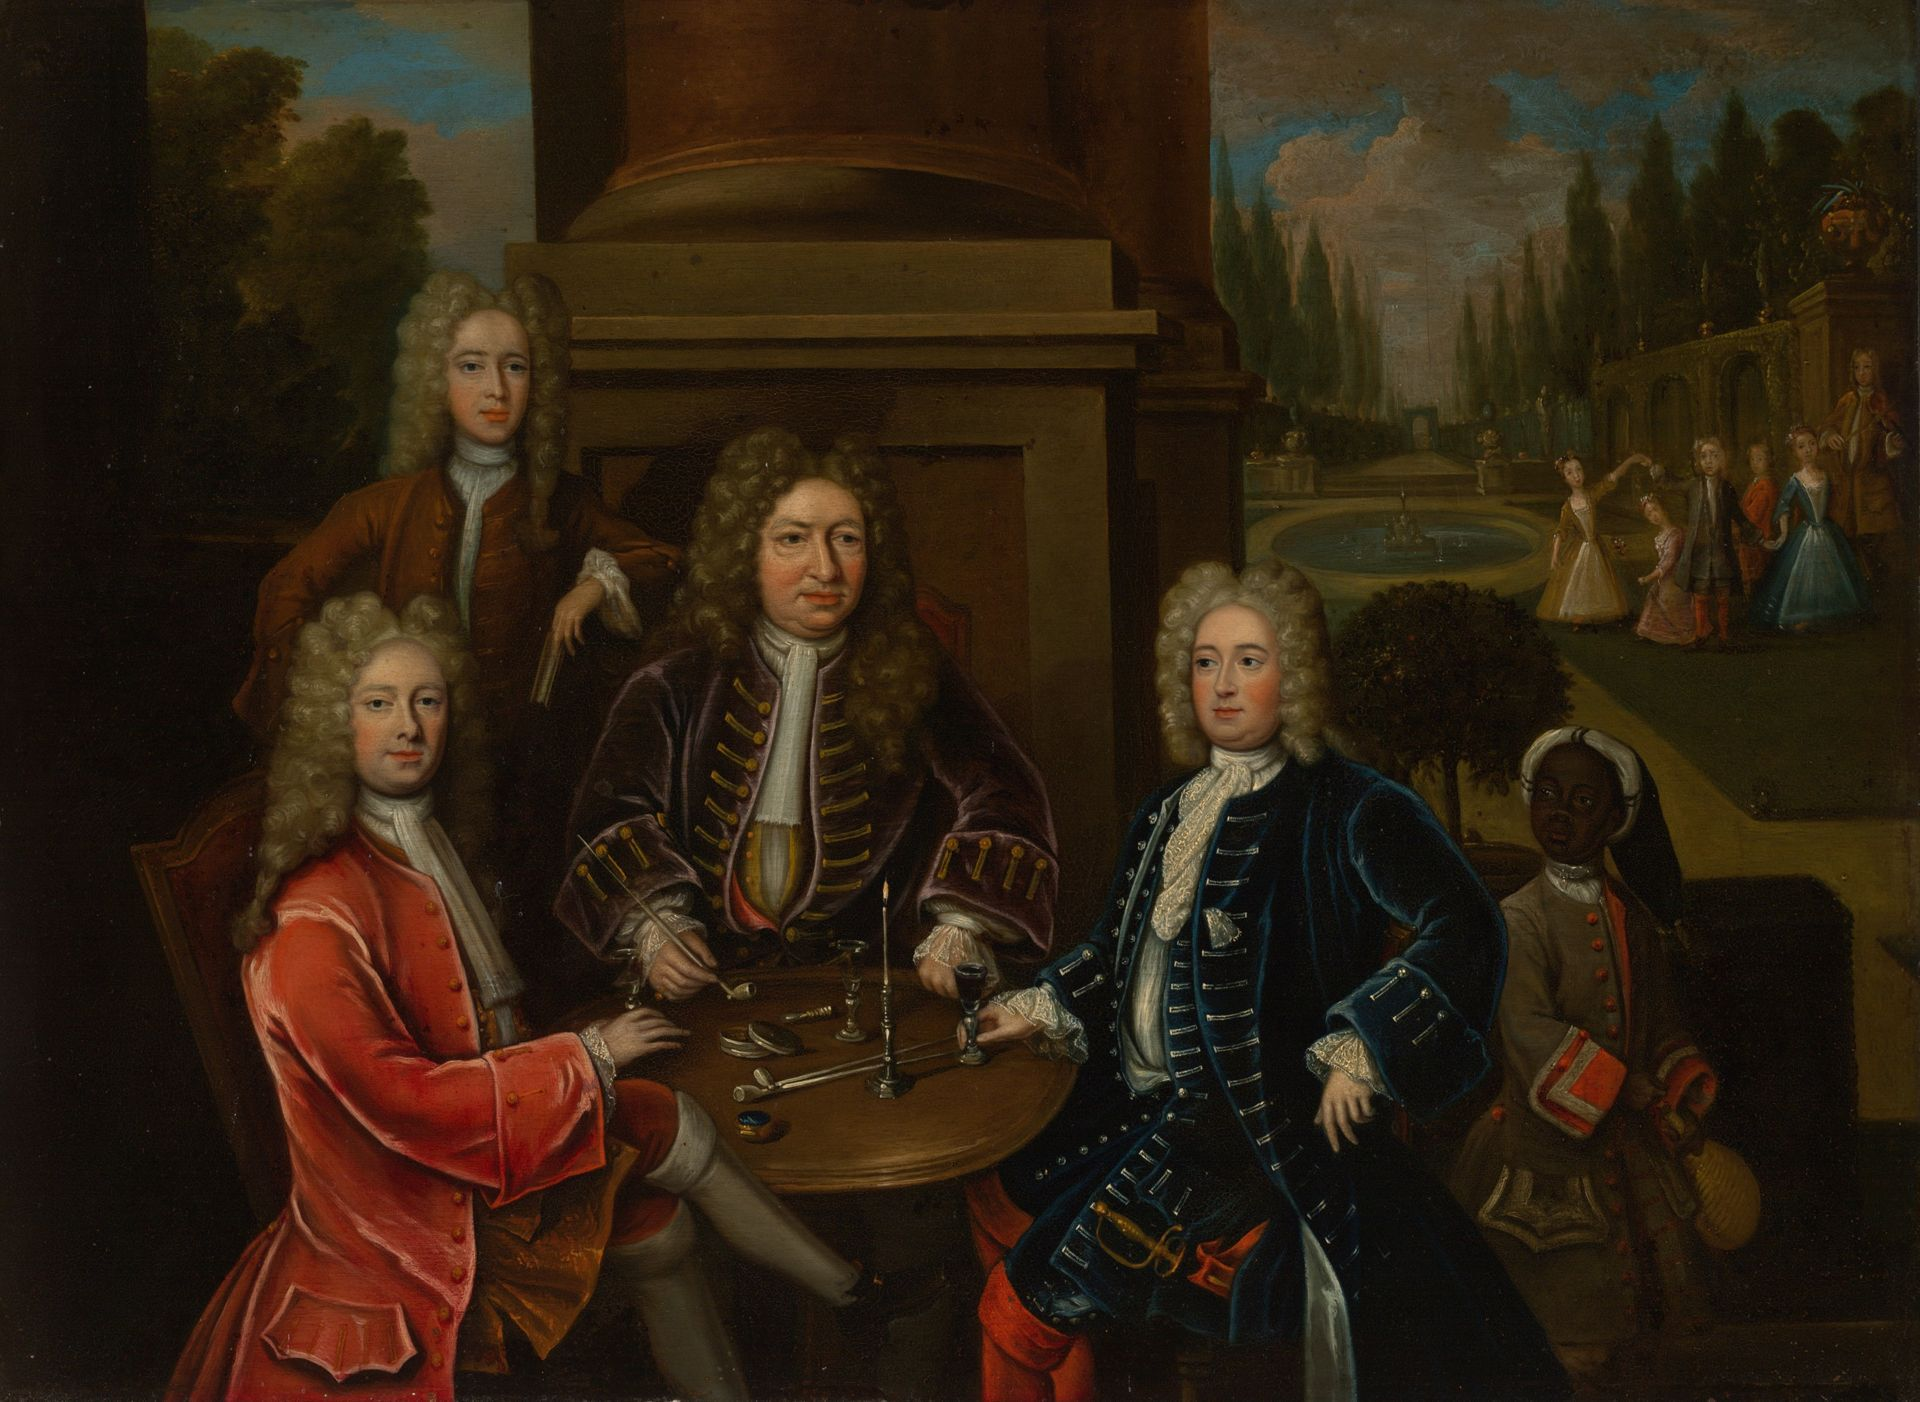 Unknown artist, Elihu Yale seated at table with the Second Duke of Devonshire and Lord James Cavendish, ca. 1708, oil on copper, Transfer from the Yale University Library, Gift of Mrs. Arthur W. Butler, 1960.51